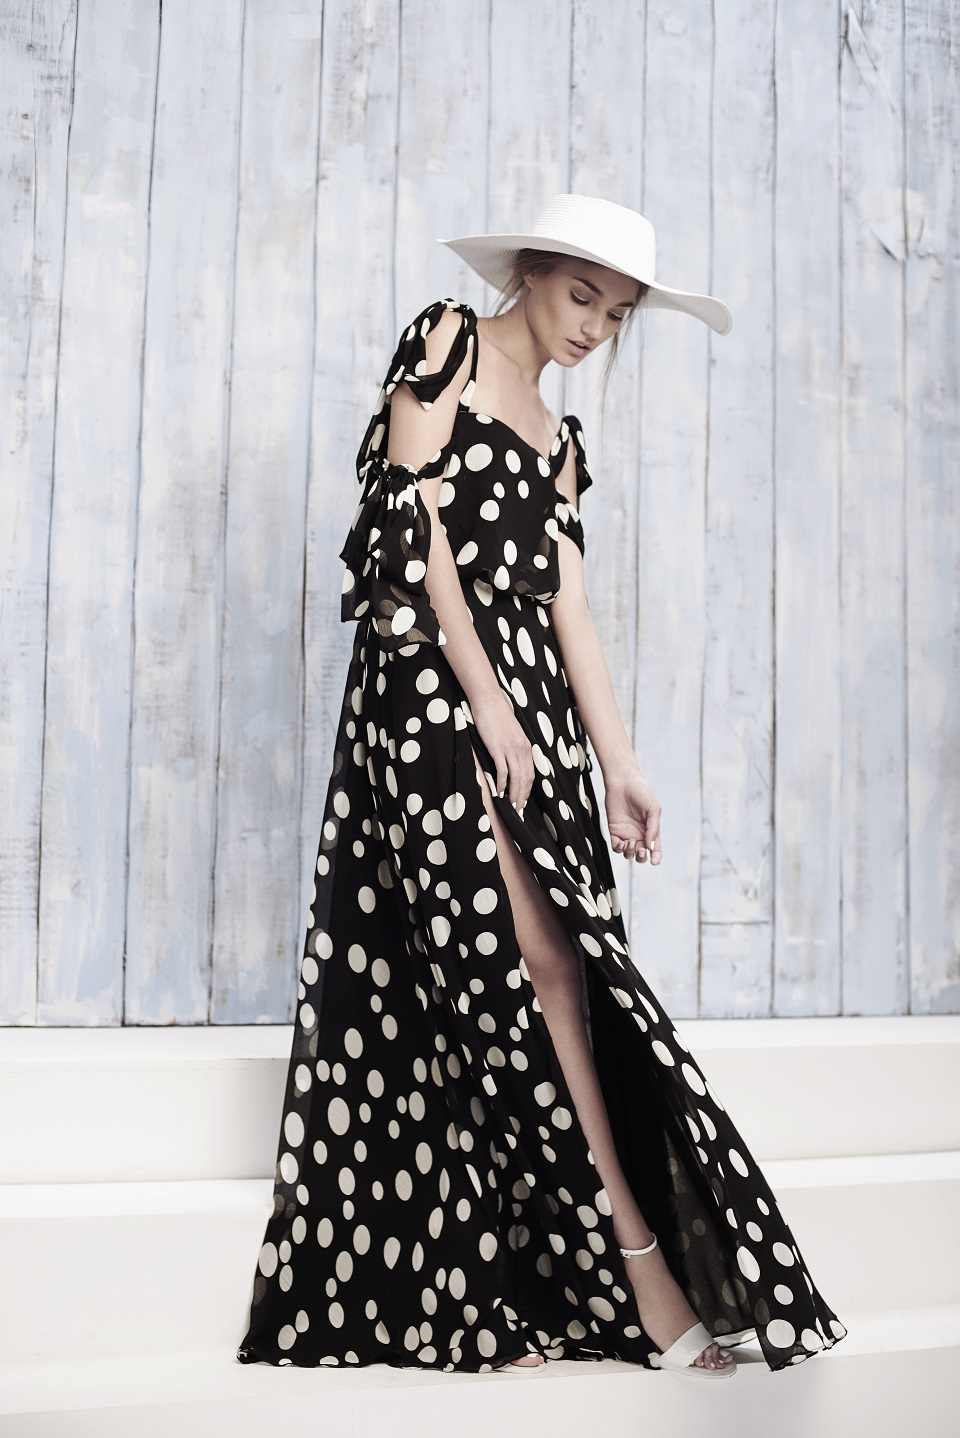 Polka dots are in this year  decrees designer Vania Romoff  Photo courtesy  of Vania Romoff. Top PHL designers say 2015 is the year to dress down   Lifestyle